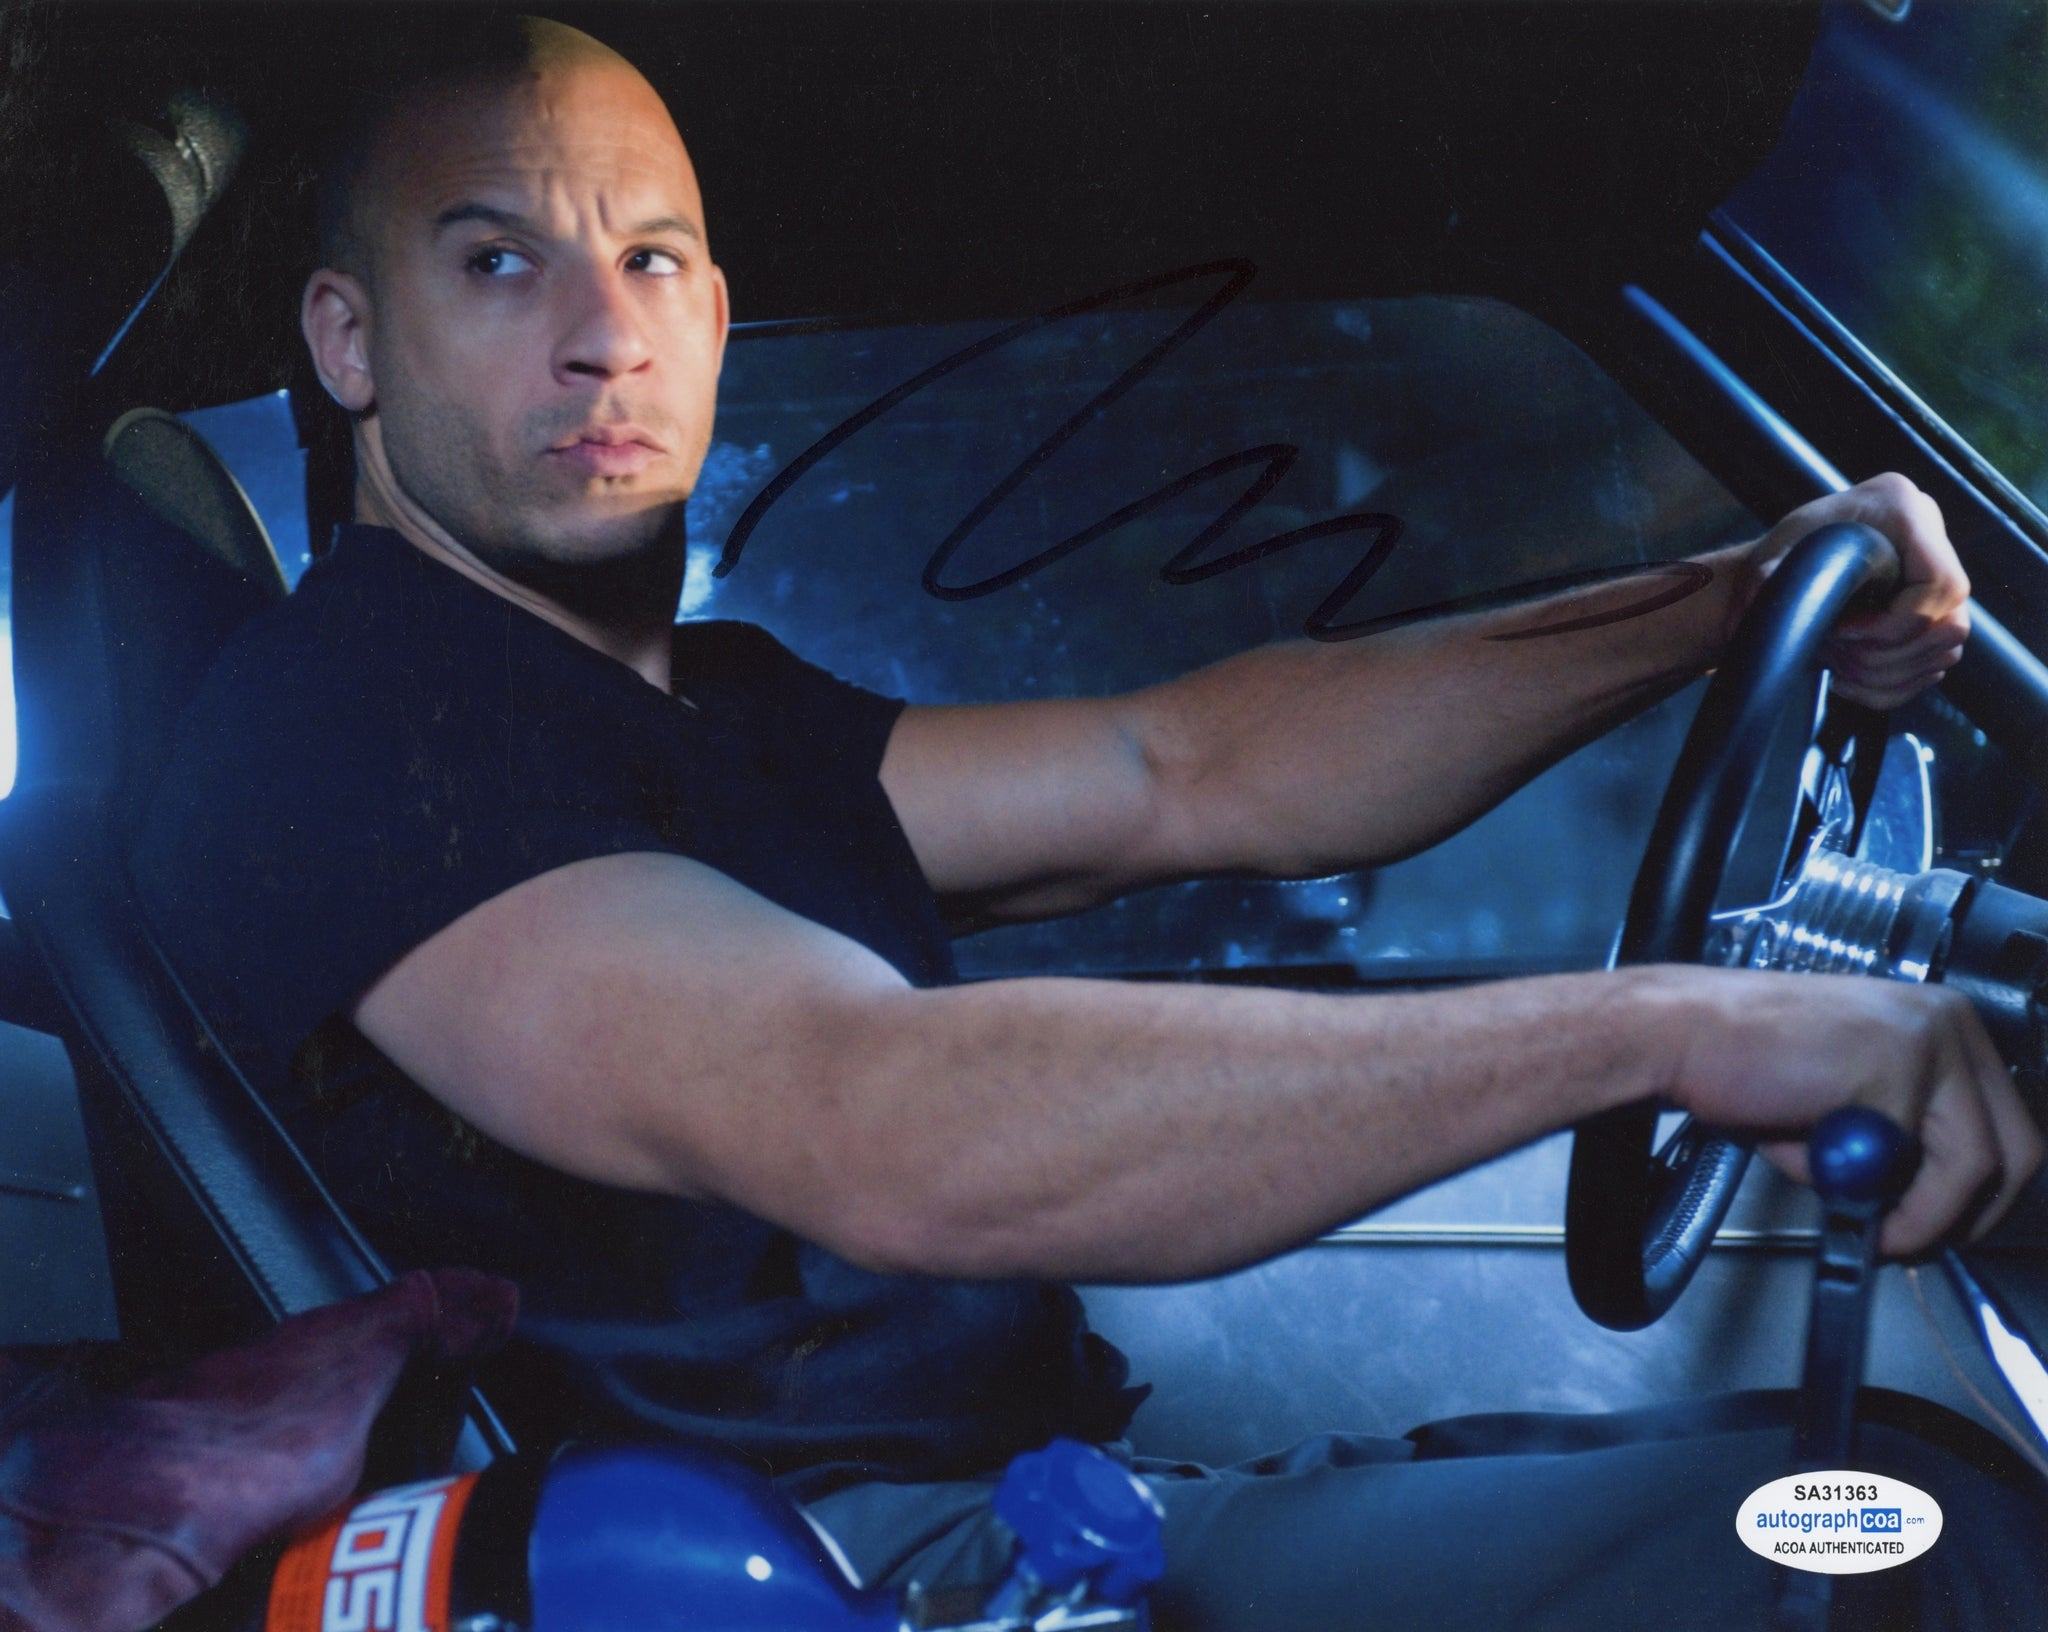 Vin Diesel Fast and Furious Signed Autograph 8x10 Photo ACOA - Outlaw Hobbies Authentic Autographs